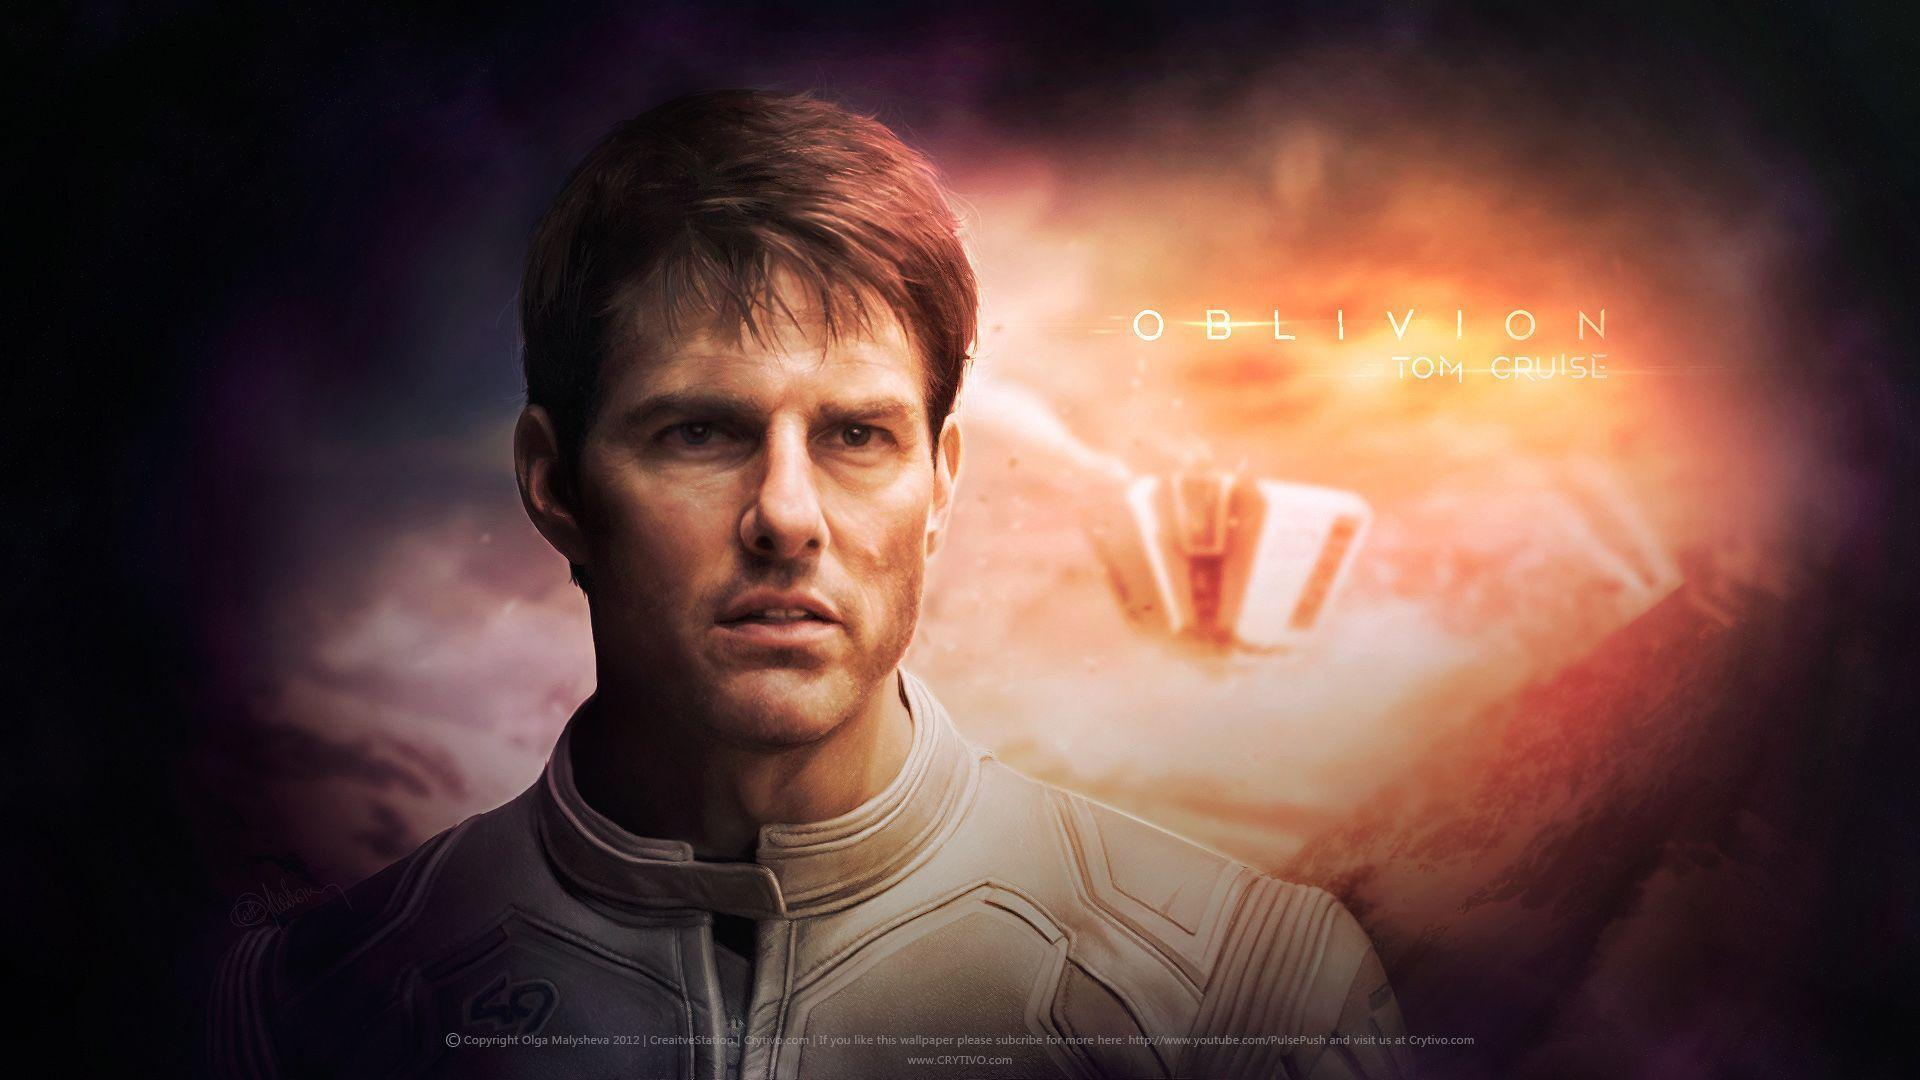 Tom Cruise Wallpapers Wallpaper Cave